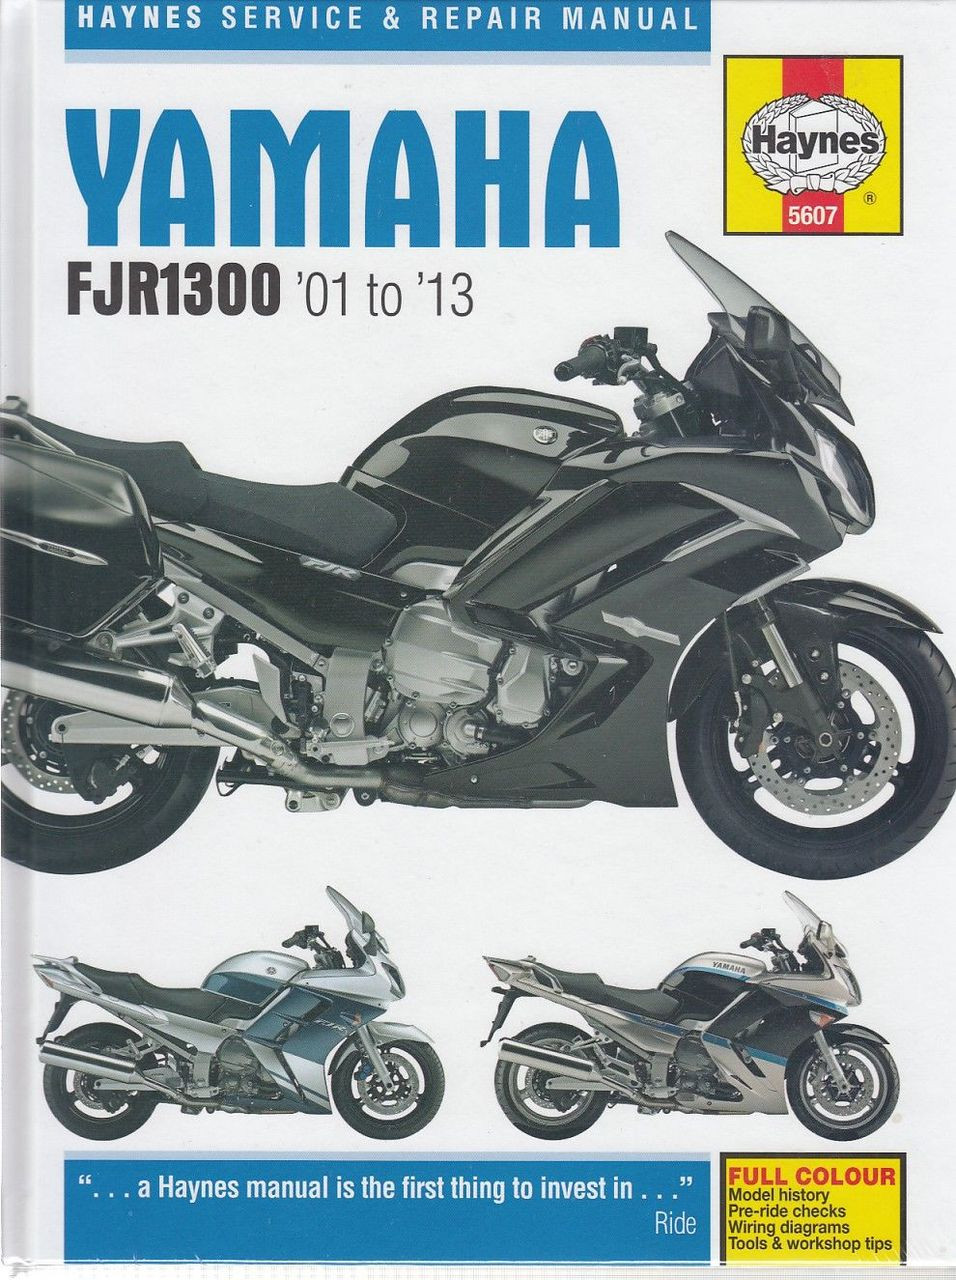 yamaha fjr1300 fjr1300a fjr1300as 1298cc 2001 2013 workshop manual rh automotobookshop com au Yamaha ATV Wiring Diagram Yamaha Motorcycle Wiring Diagrams